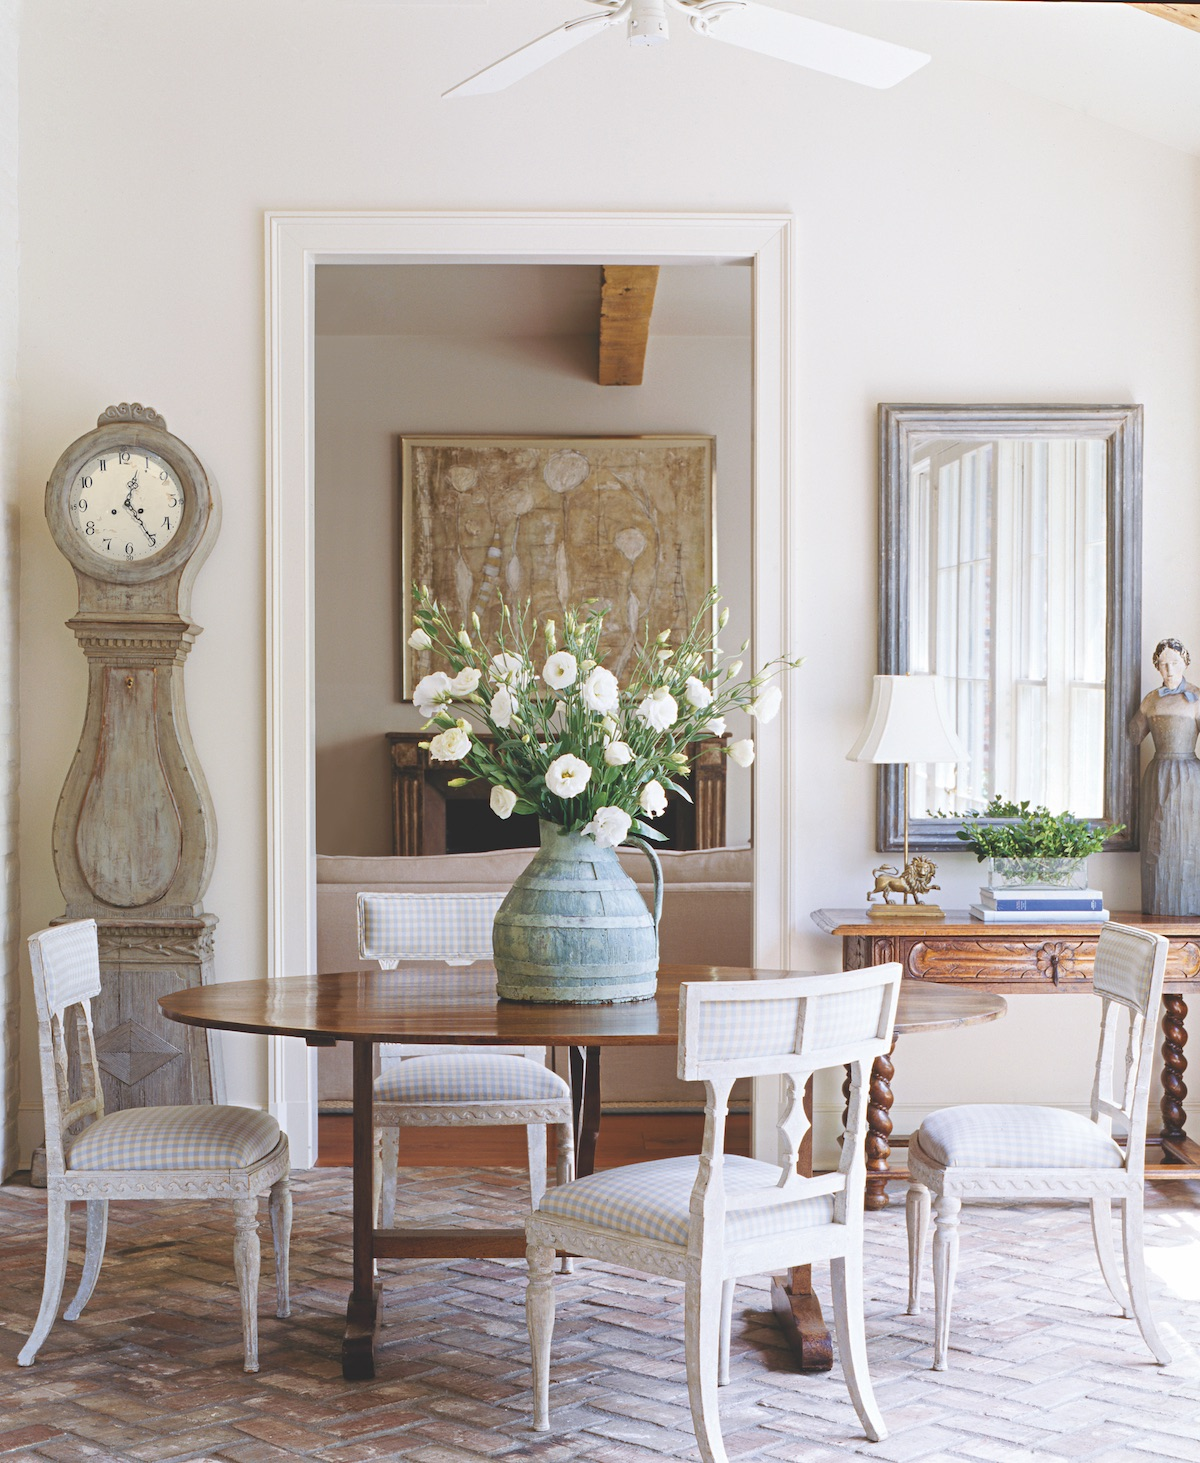 Dining Room Decor Inspiration: Inspired Dining Room Decor And Design Ideas